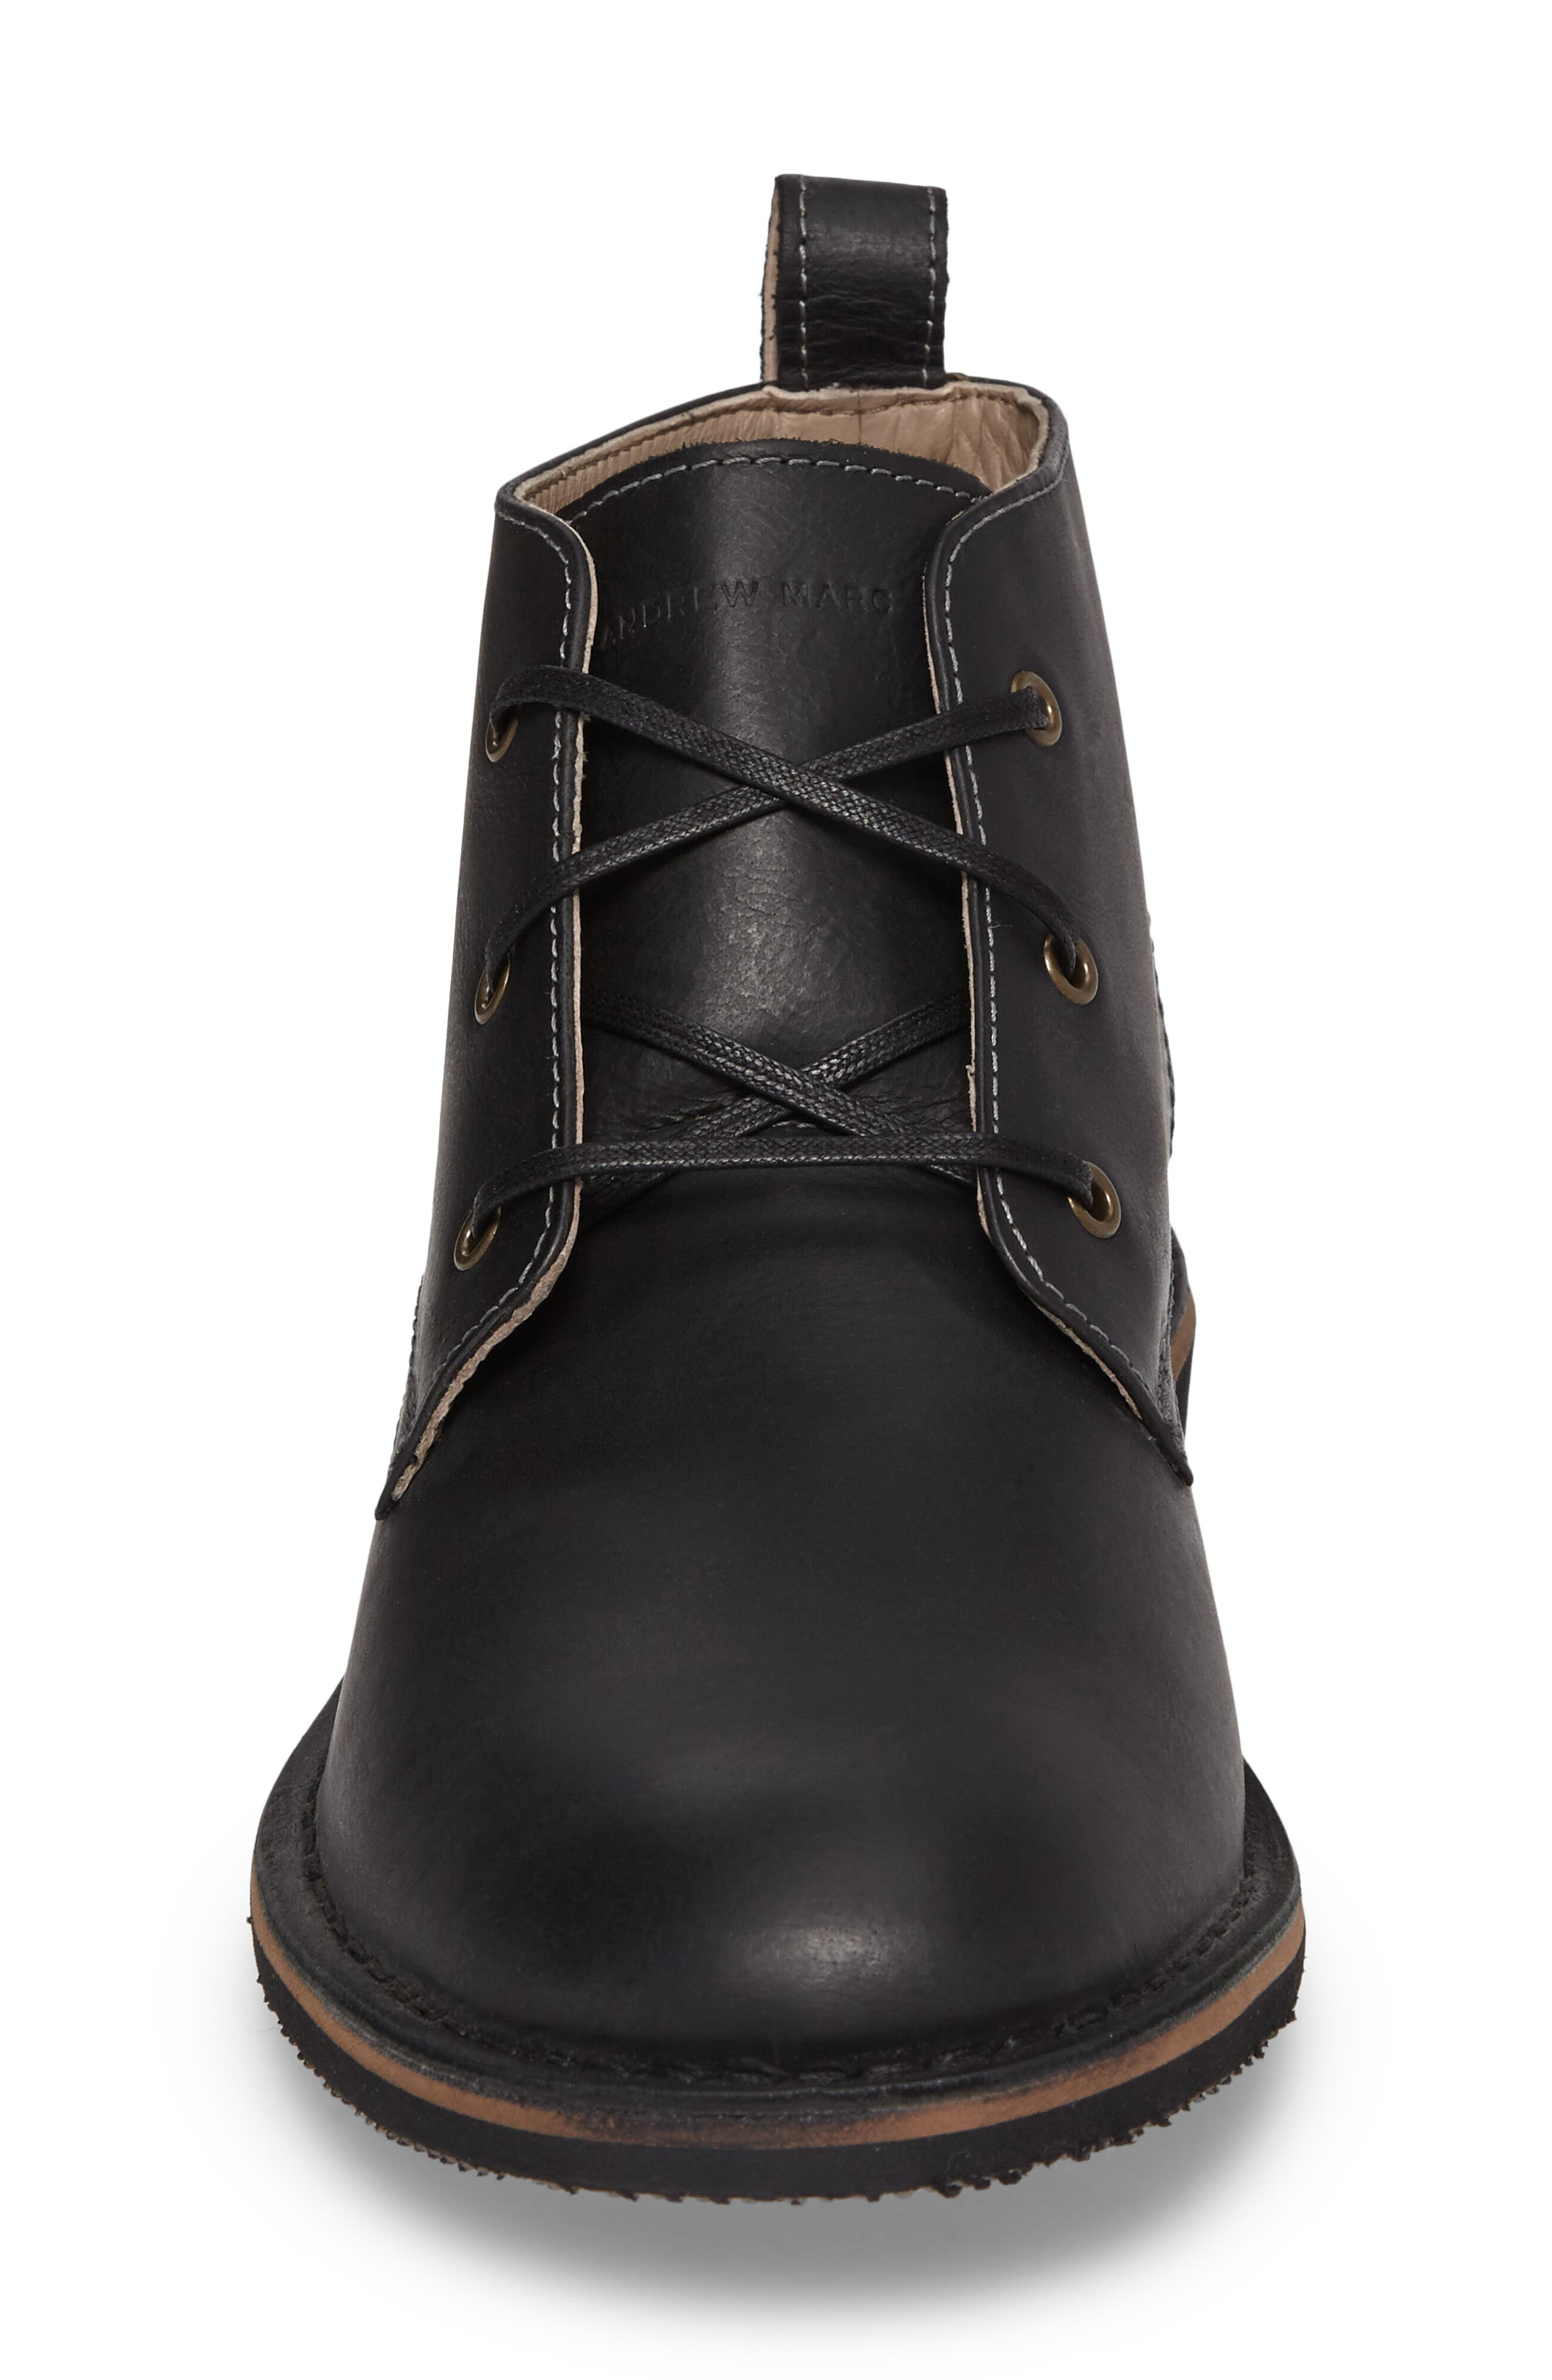 Dorchester Chukka Boot,                             Alternate thumbnail 4, color,                             Black Leather